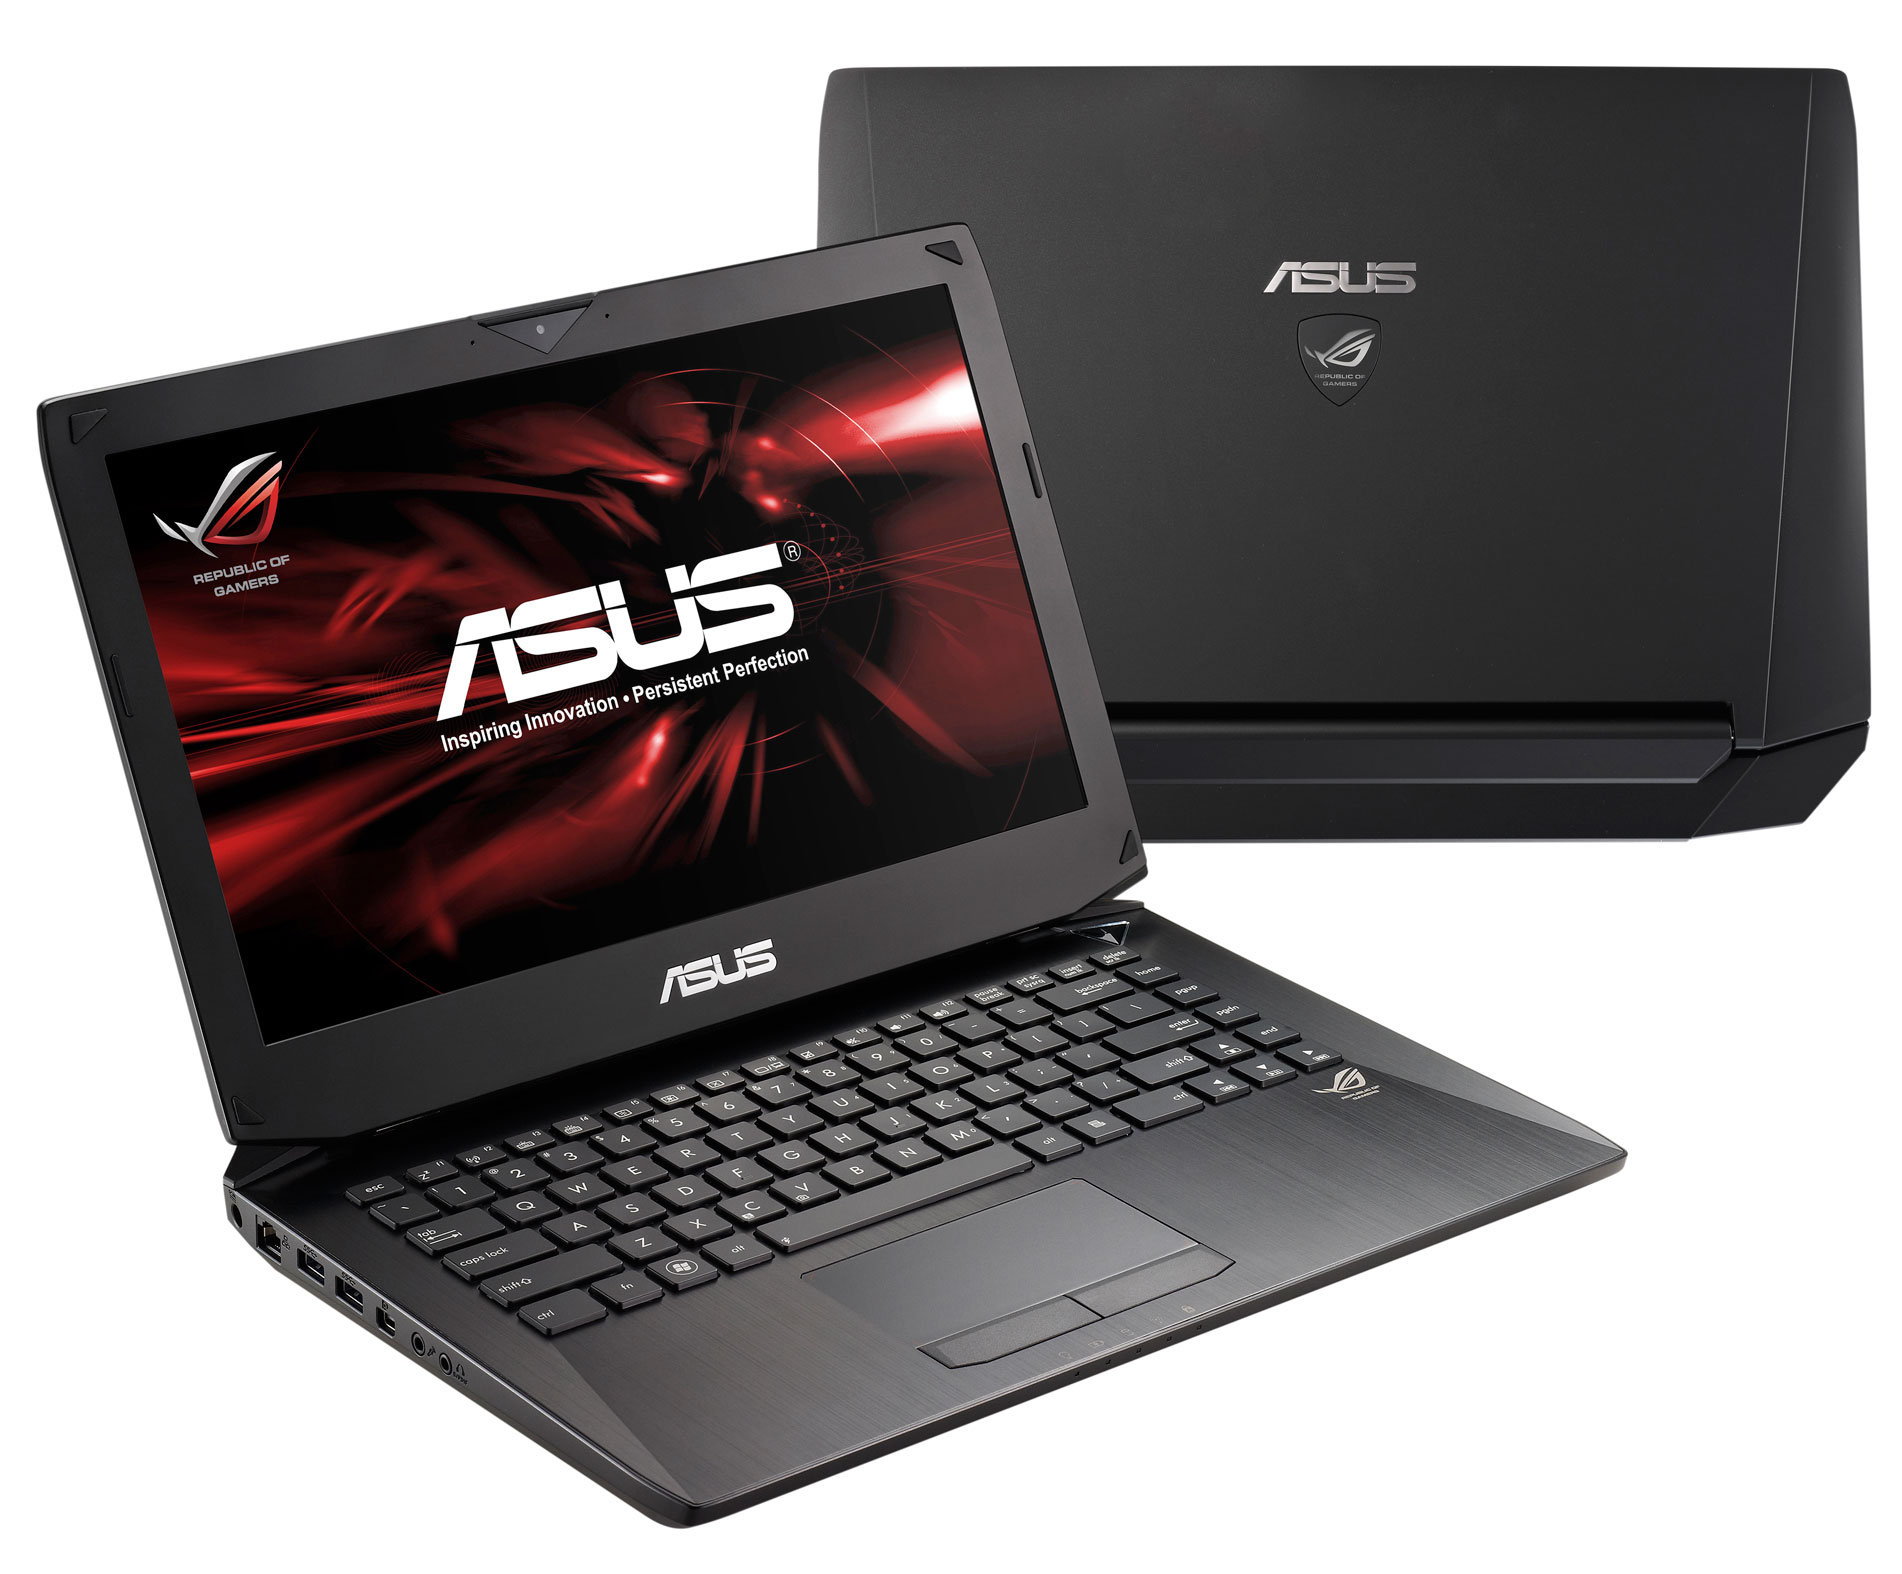 ASUS G46VW Keyboard Device Filter Drivers PC